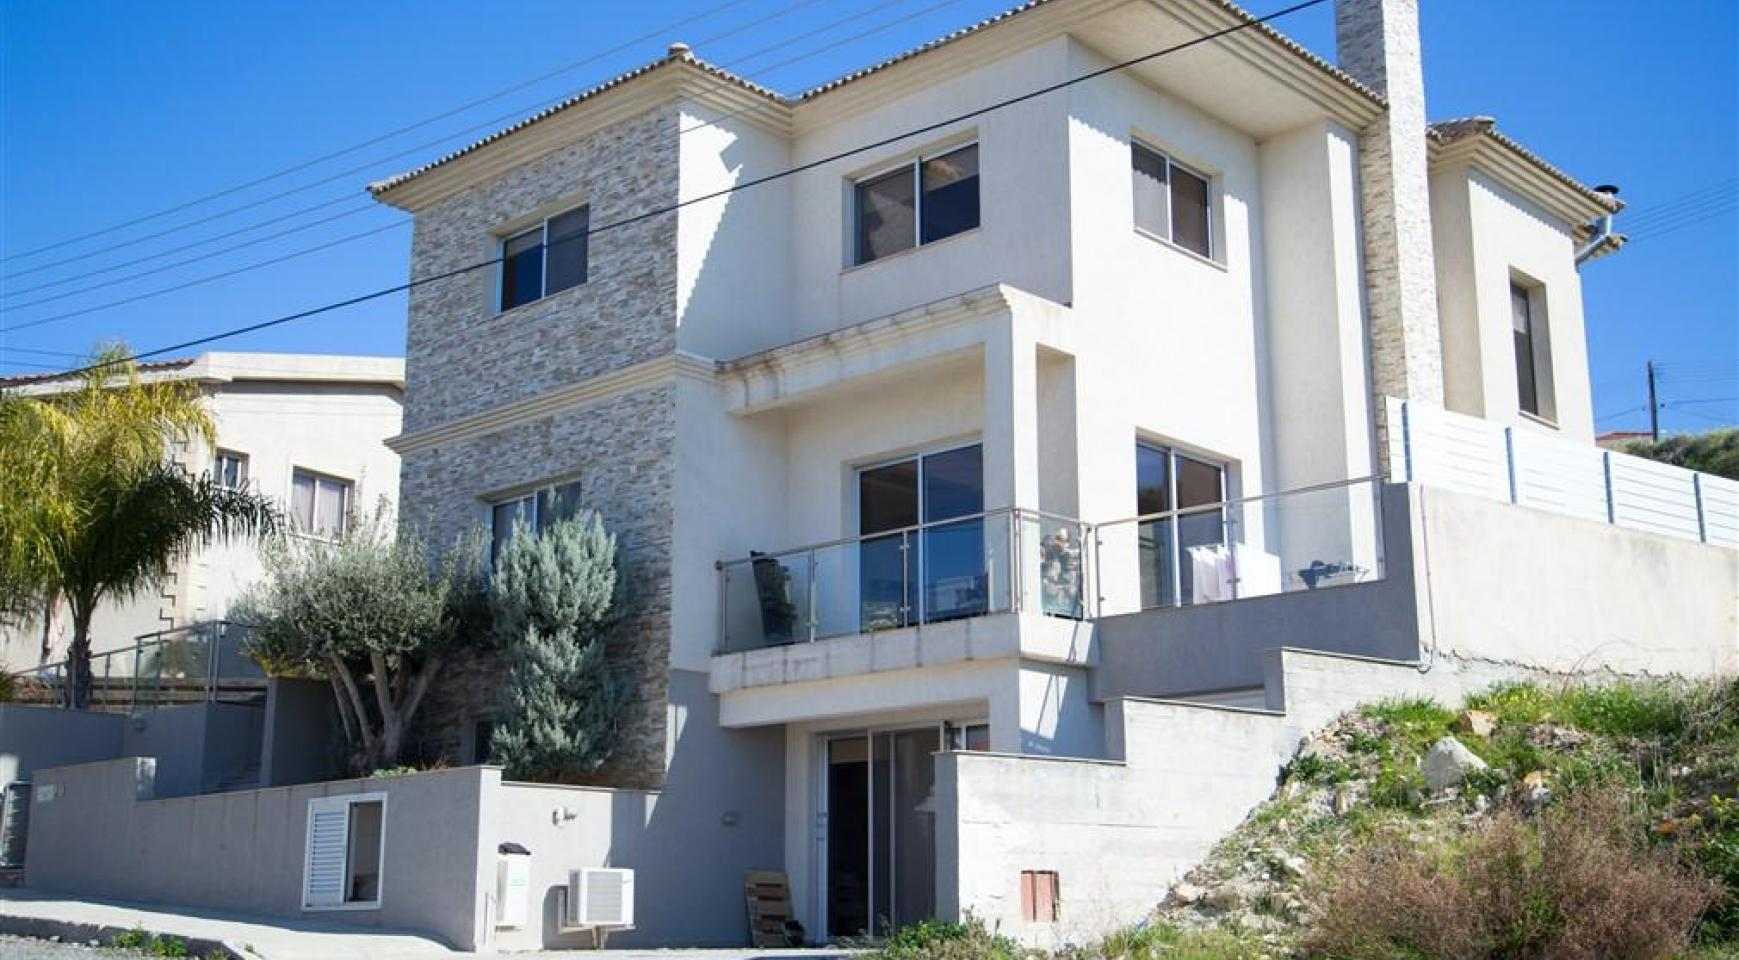 Spacious 3 Bedroom House in Agios Athanasios - 1